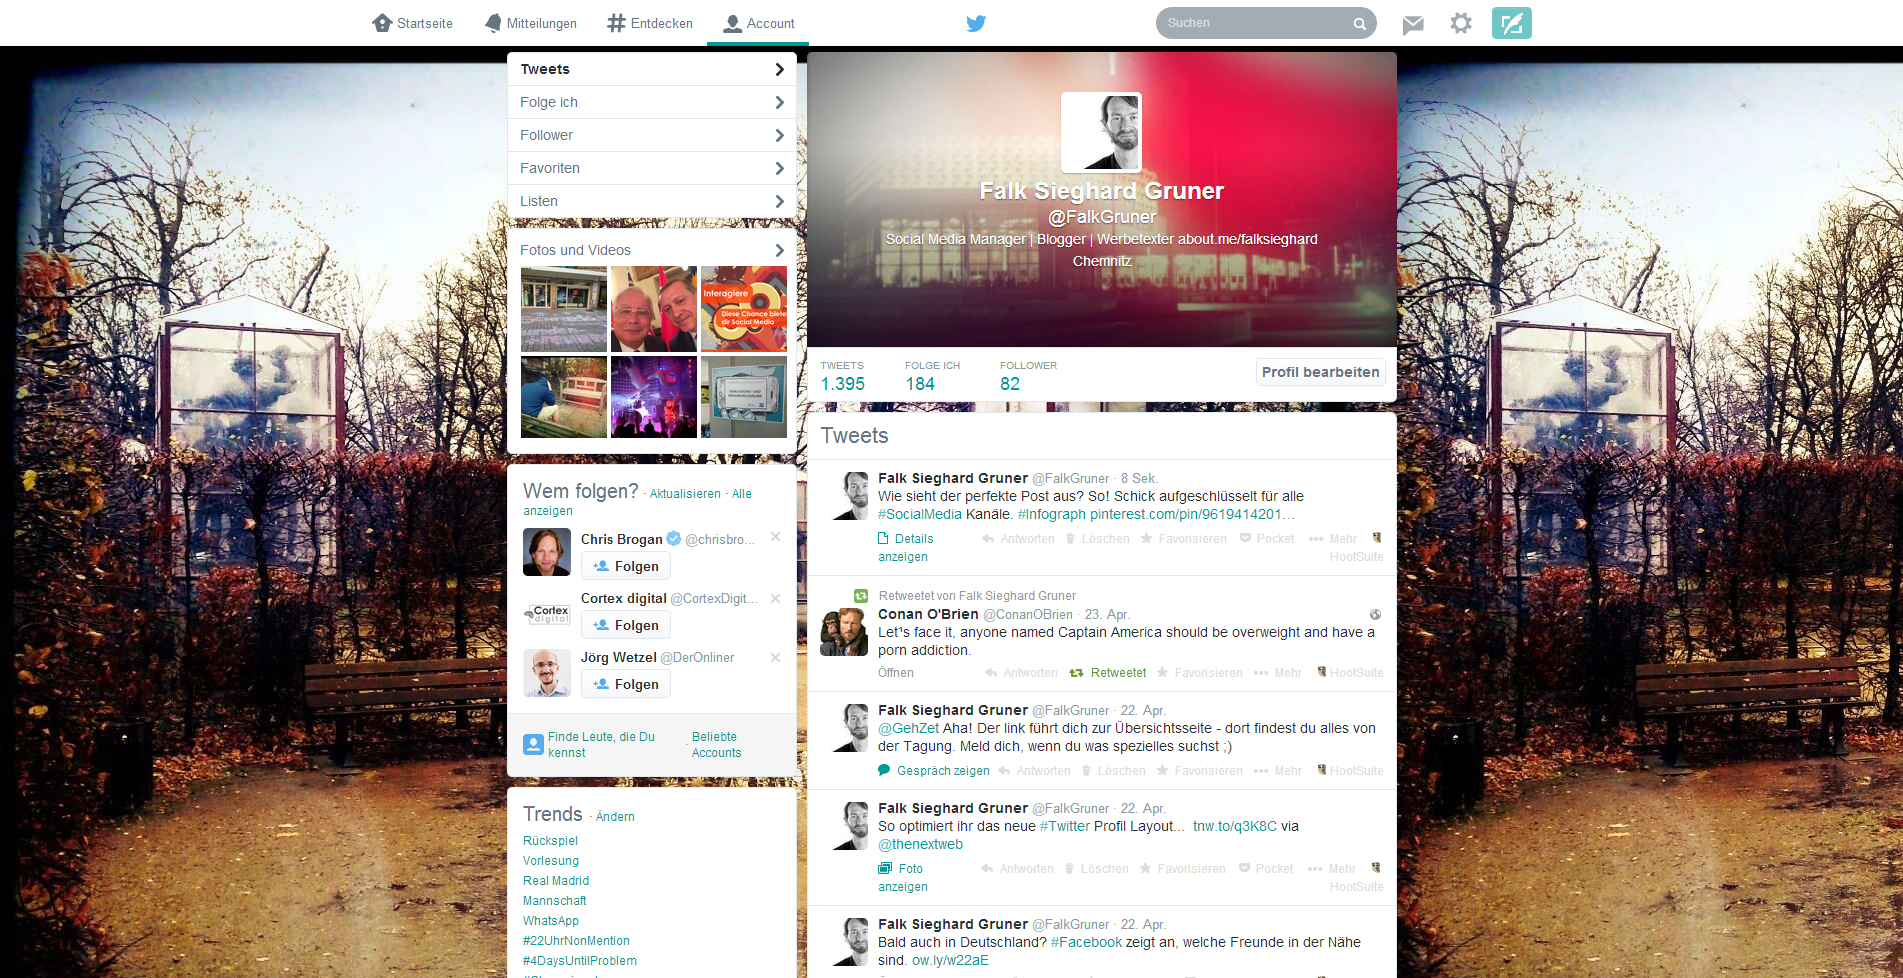 https://www.medienspinnerei.de/wp-content/uploads/2014/04/Twitter-Profil-altes-Design.png